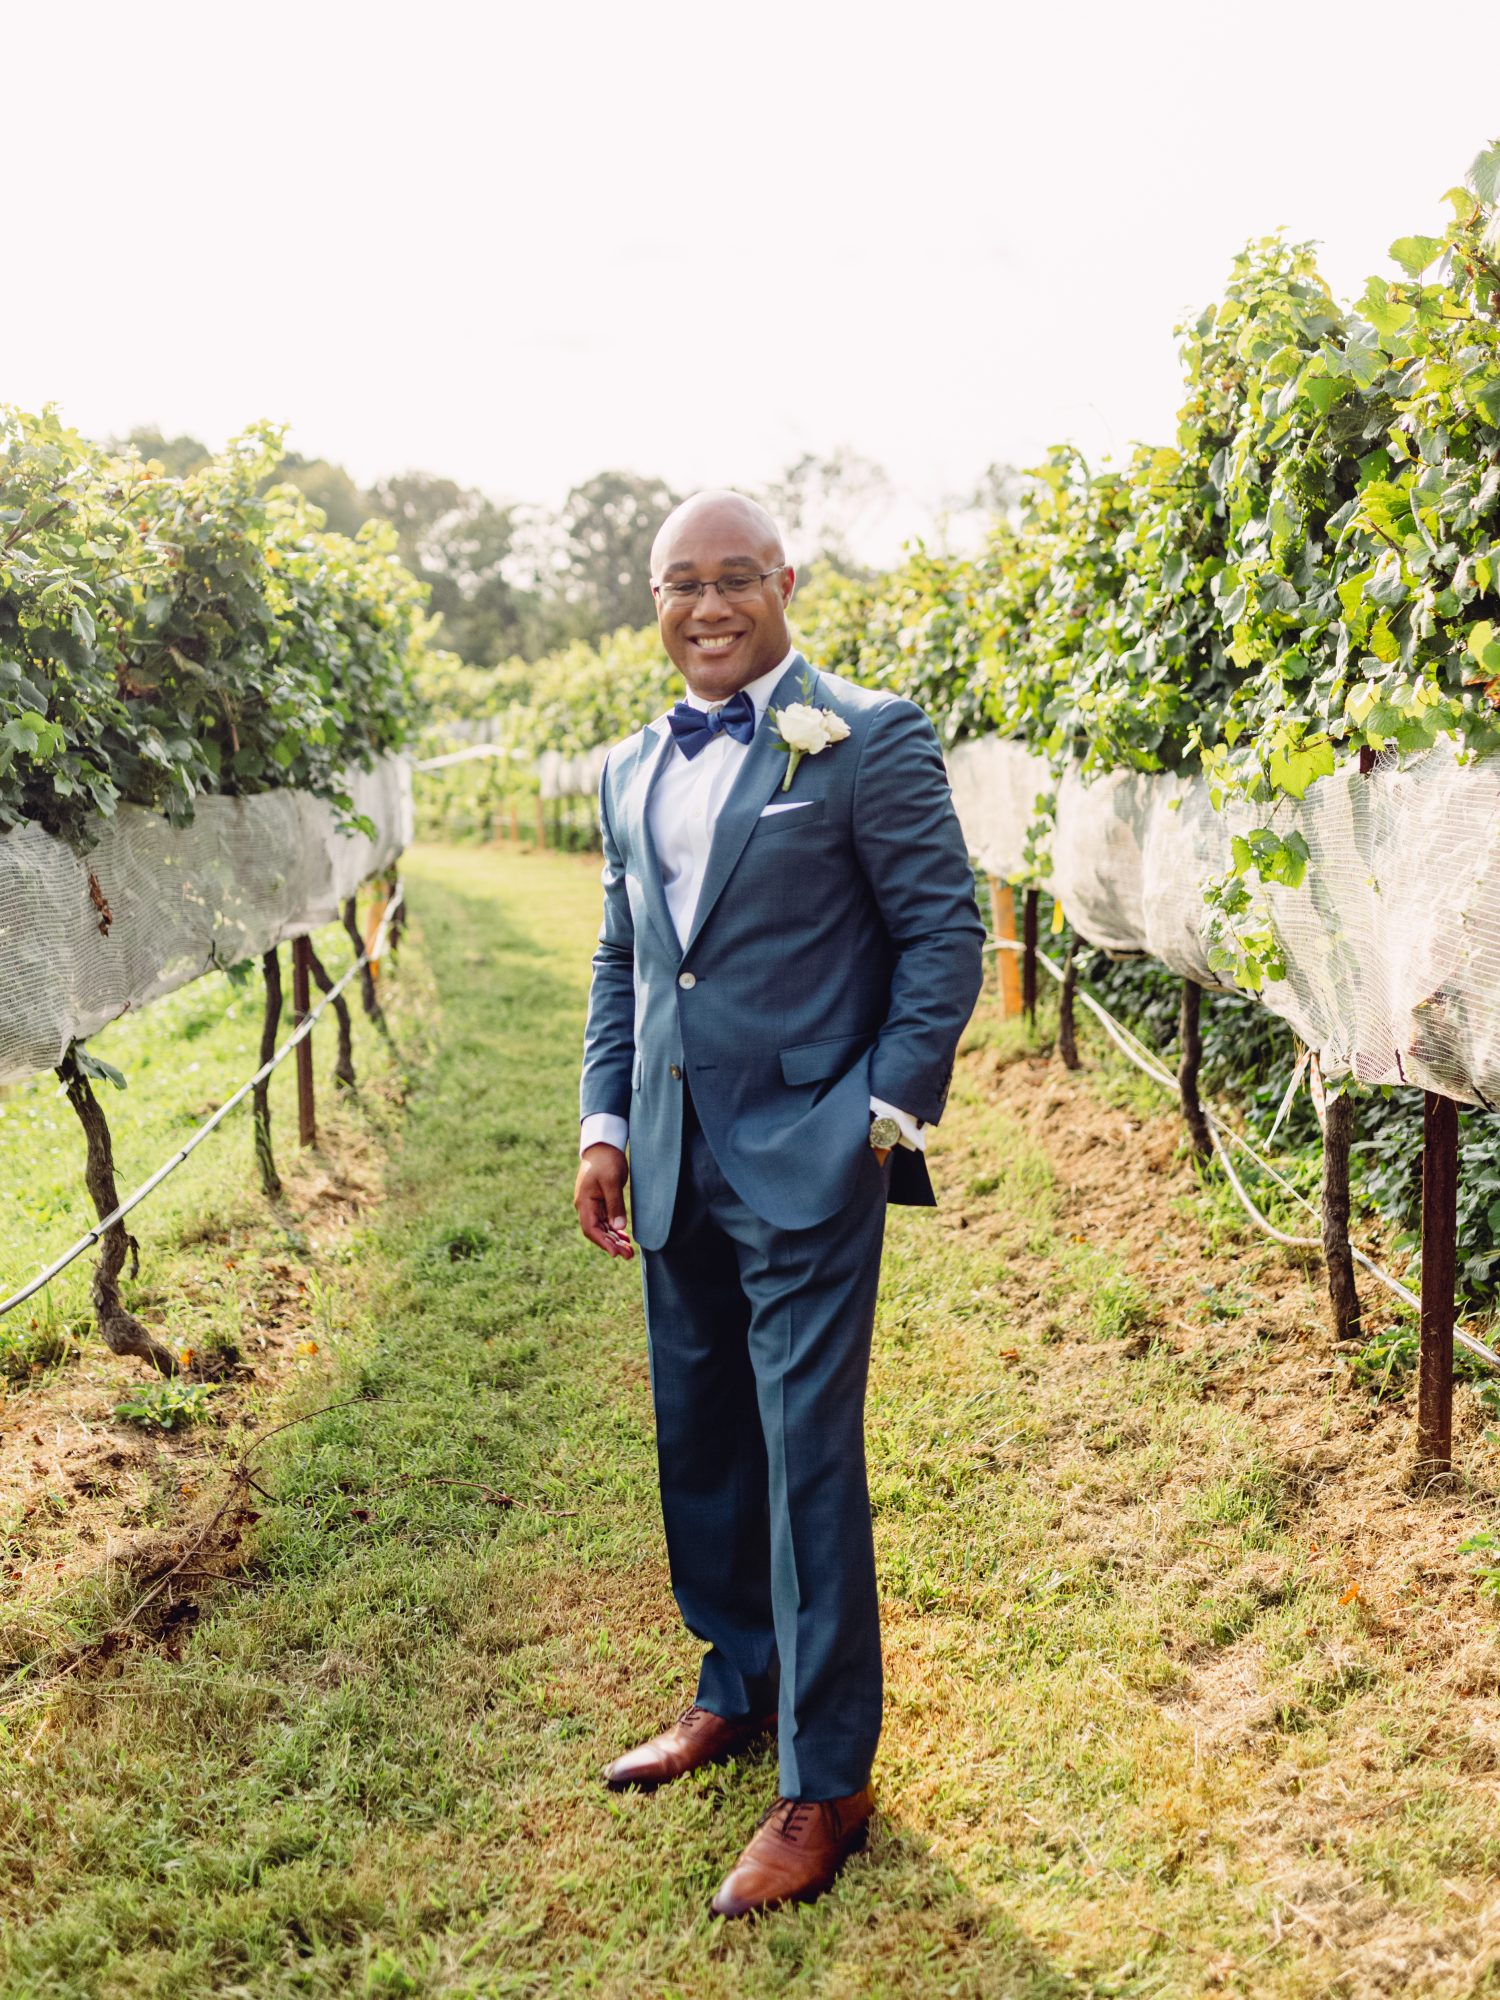 cayla david wedding groom posing in navy-blue suit at the winery venue